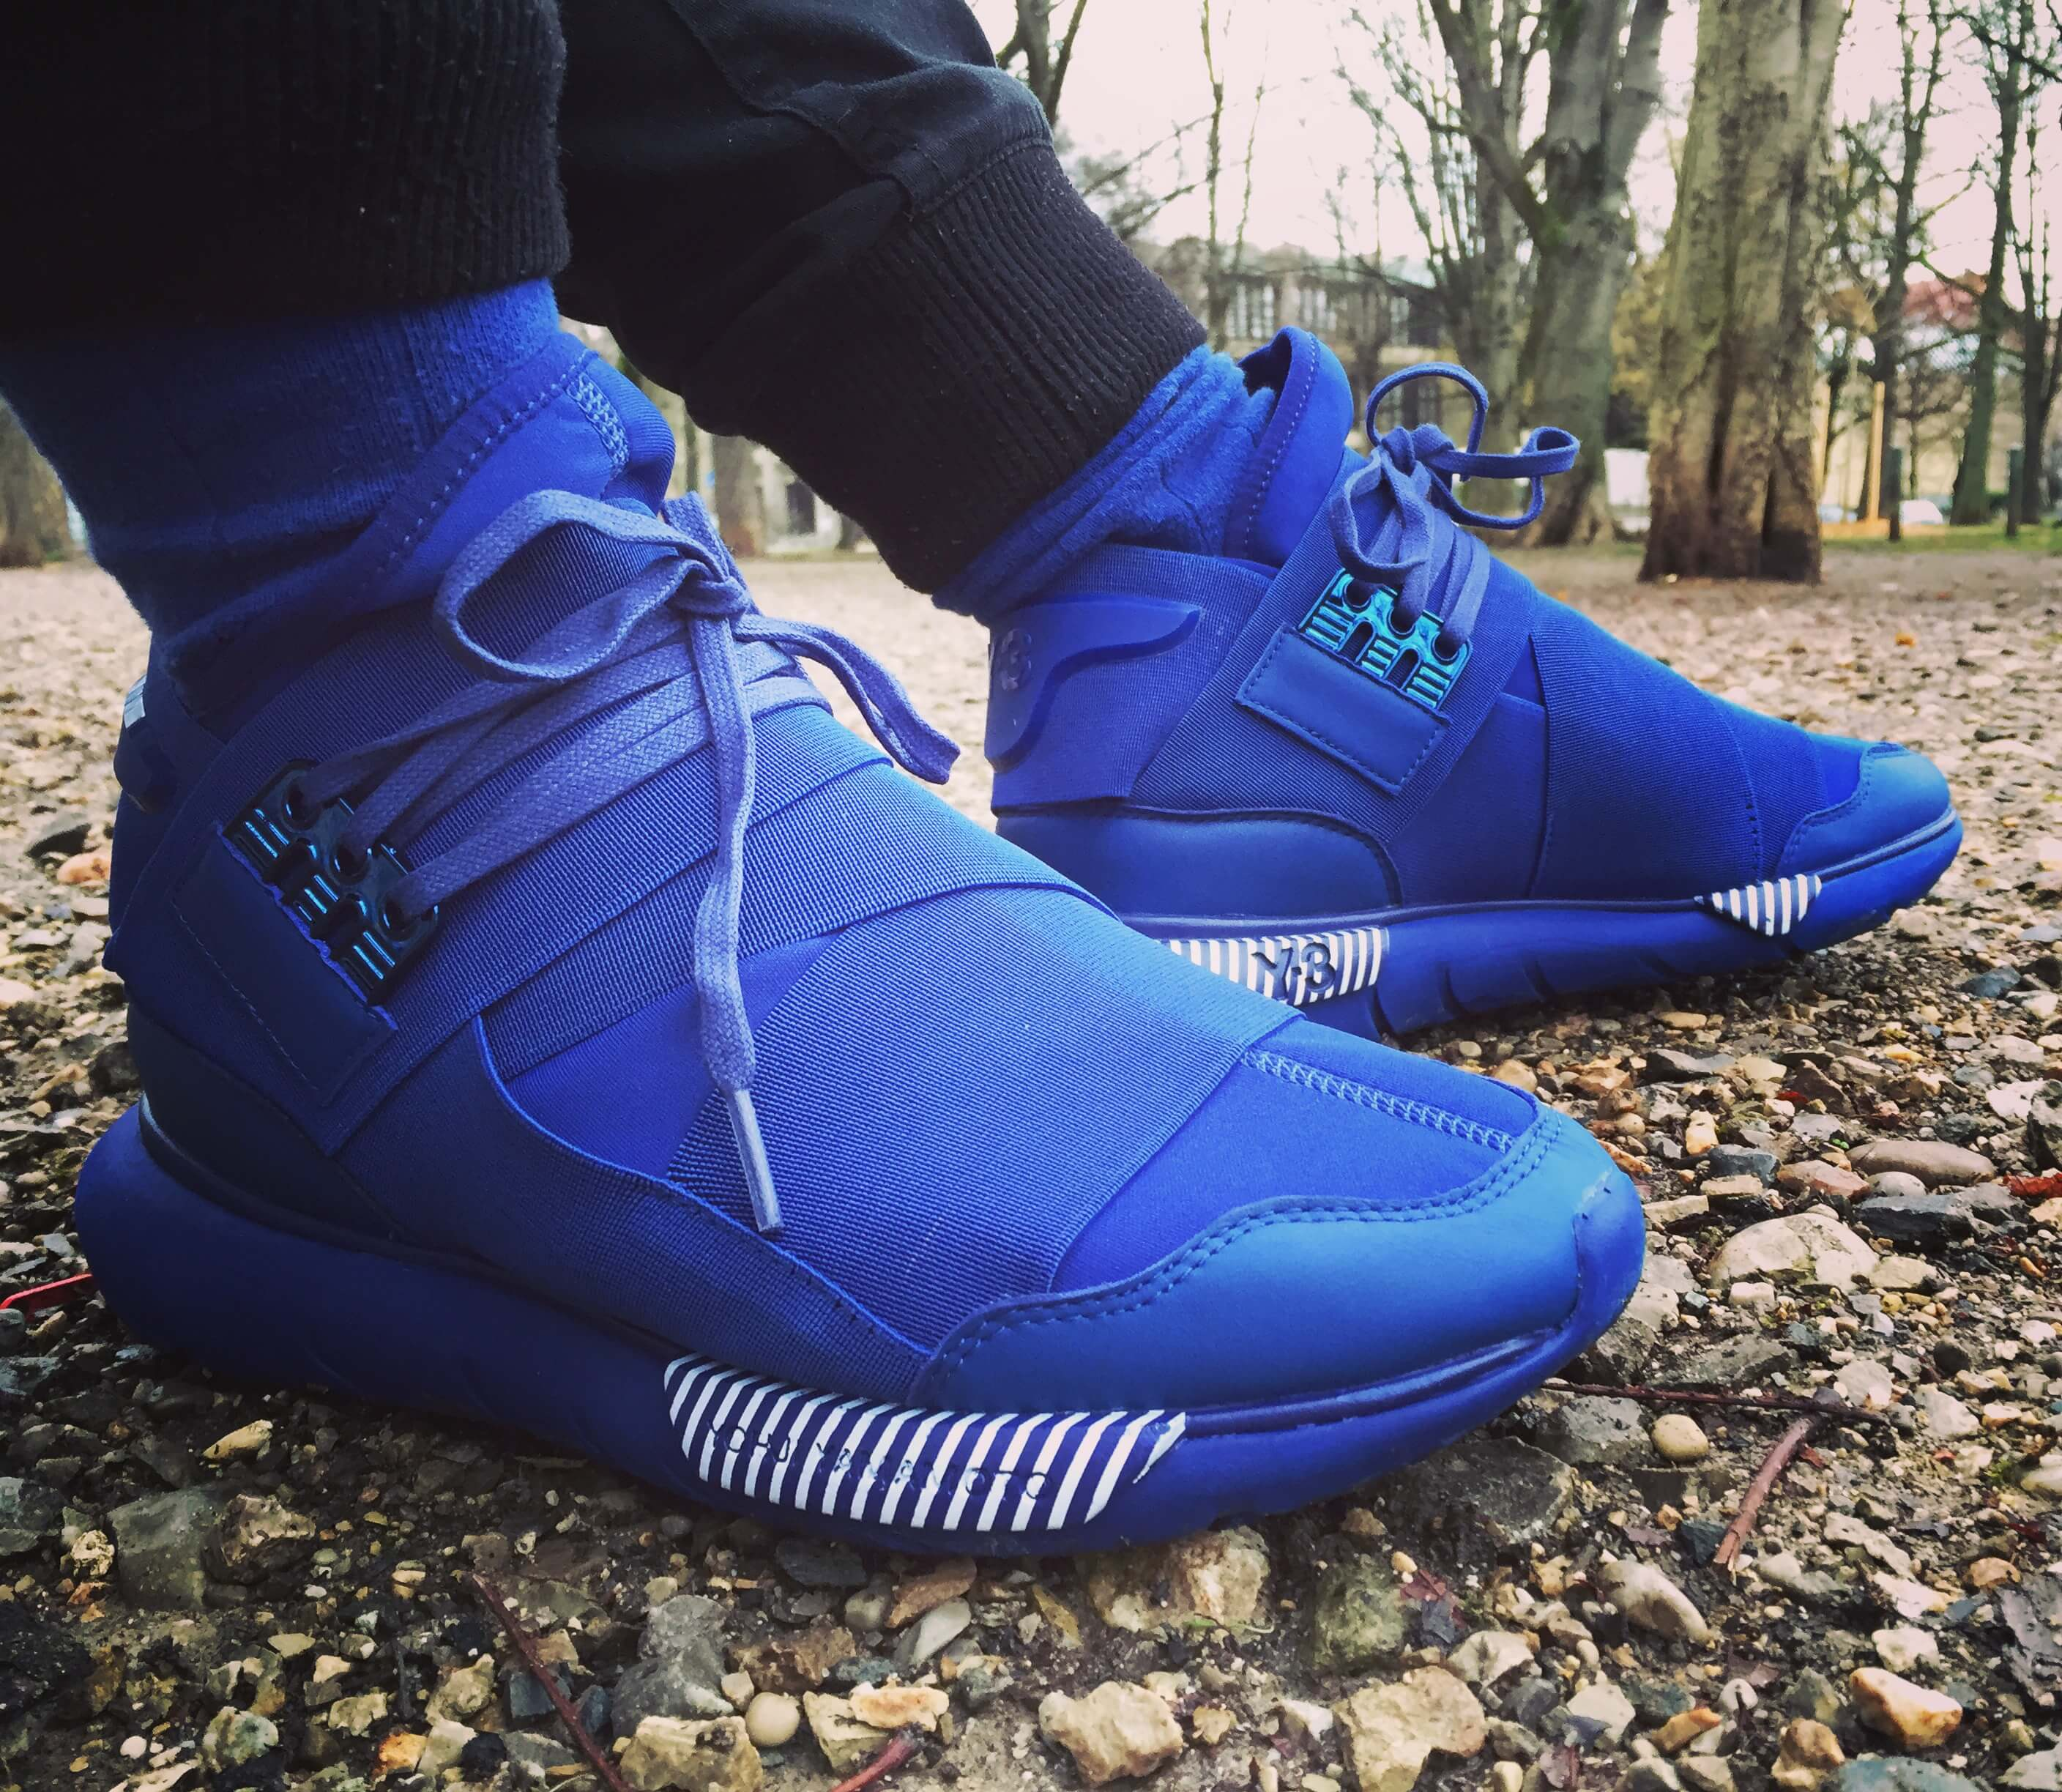 Y-3-Qasa-High-Royal-Blue-Side-View